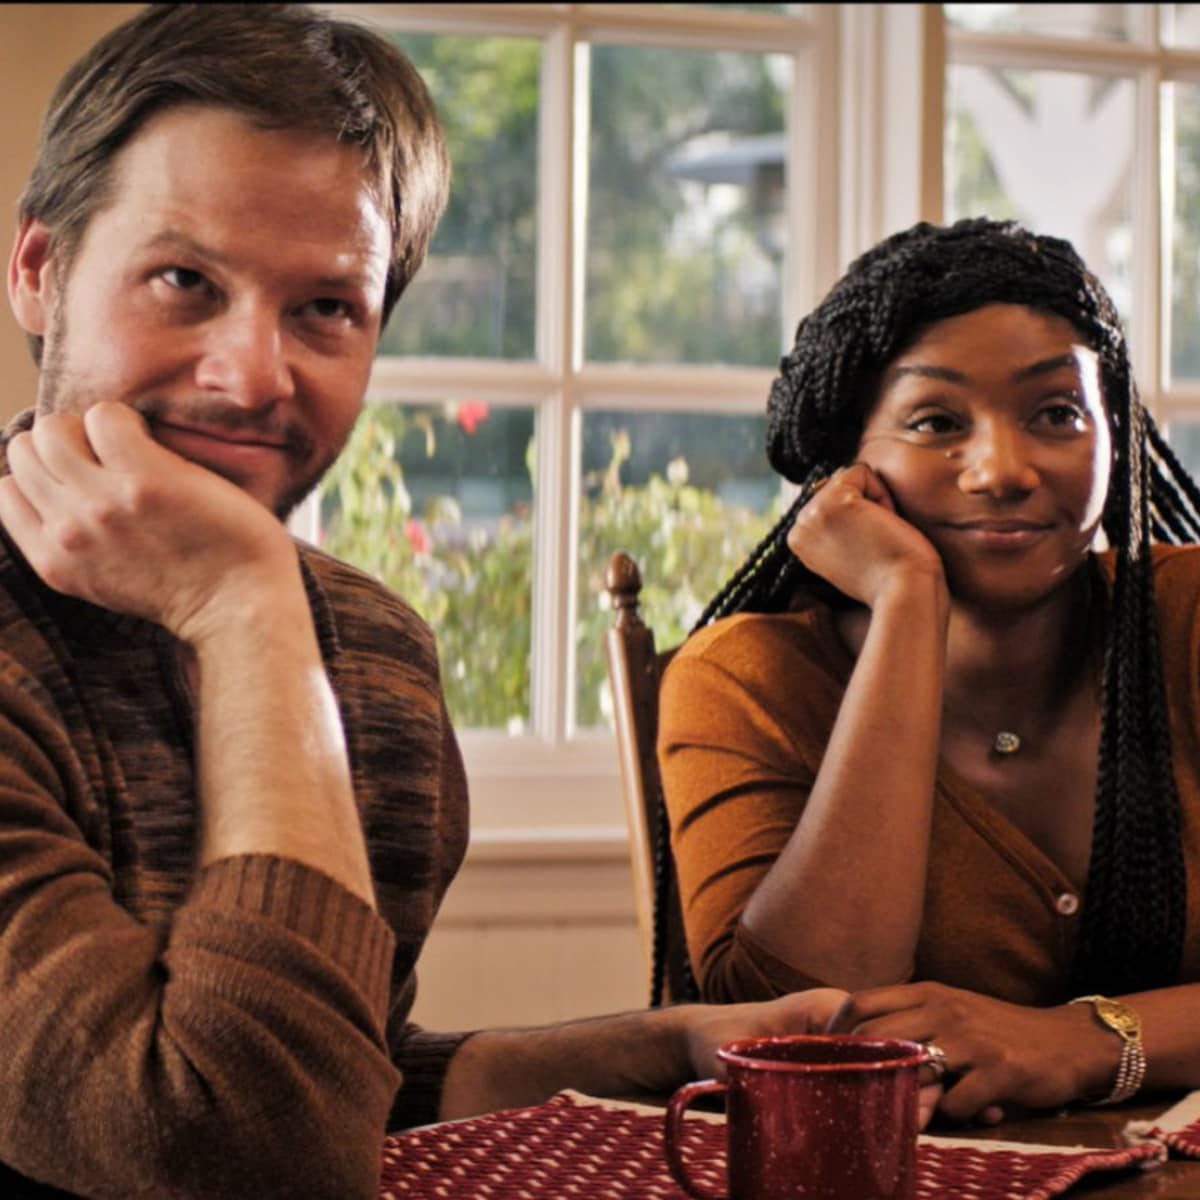 Ike Barinholtz and Tiffany Haddish in The Oath